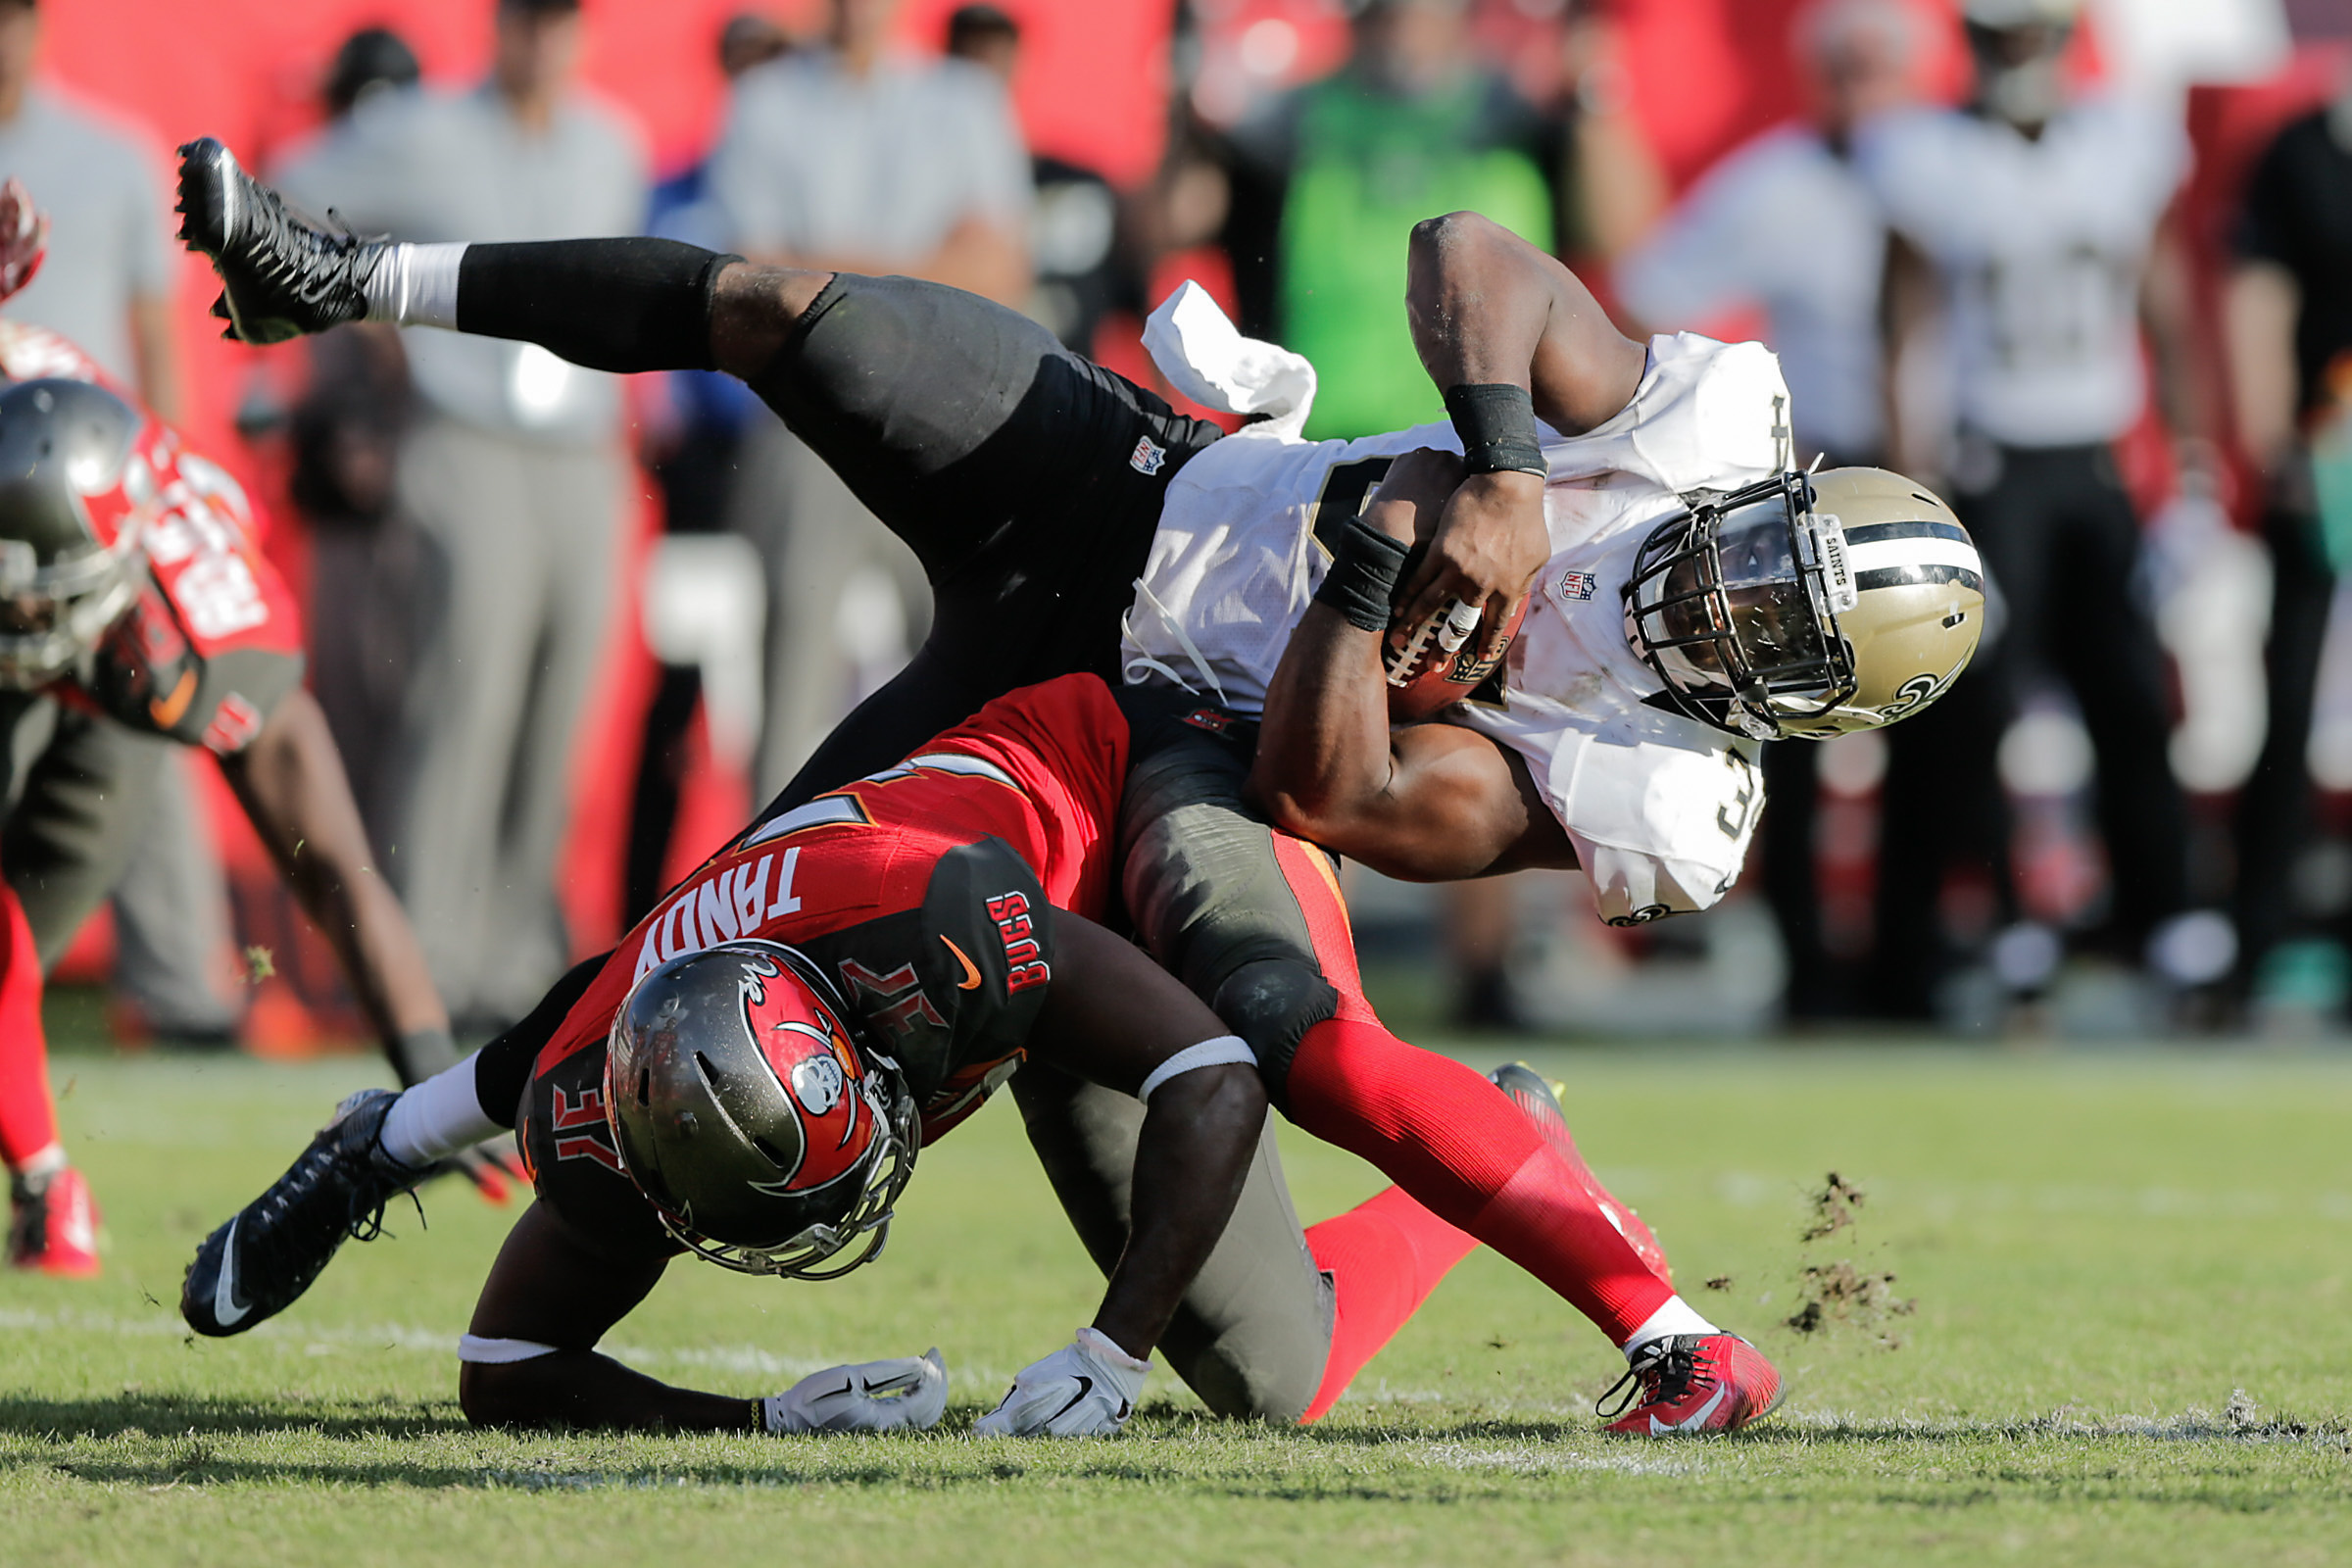 NFL 2015 - Bucs vs Saints 2006.jpg